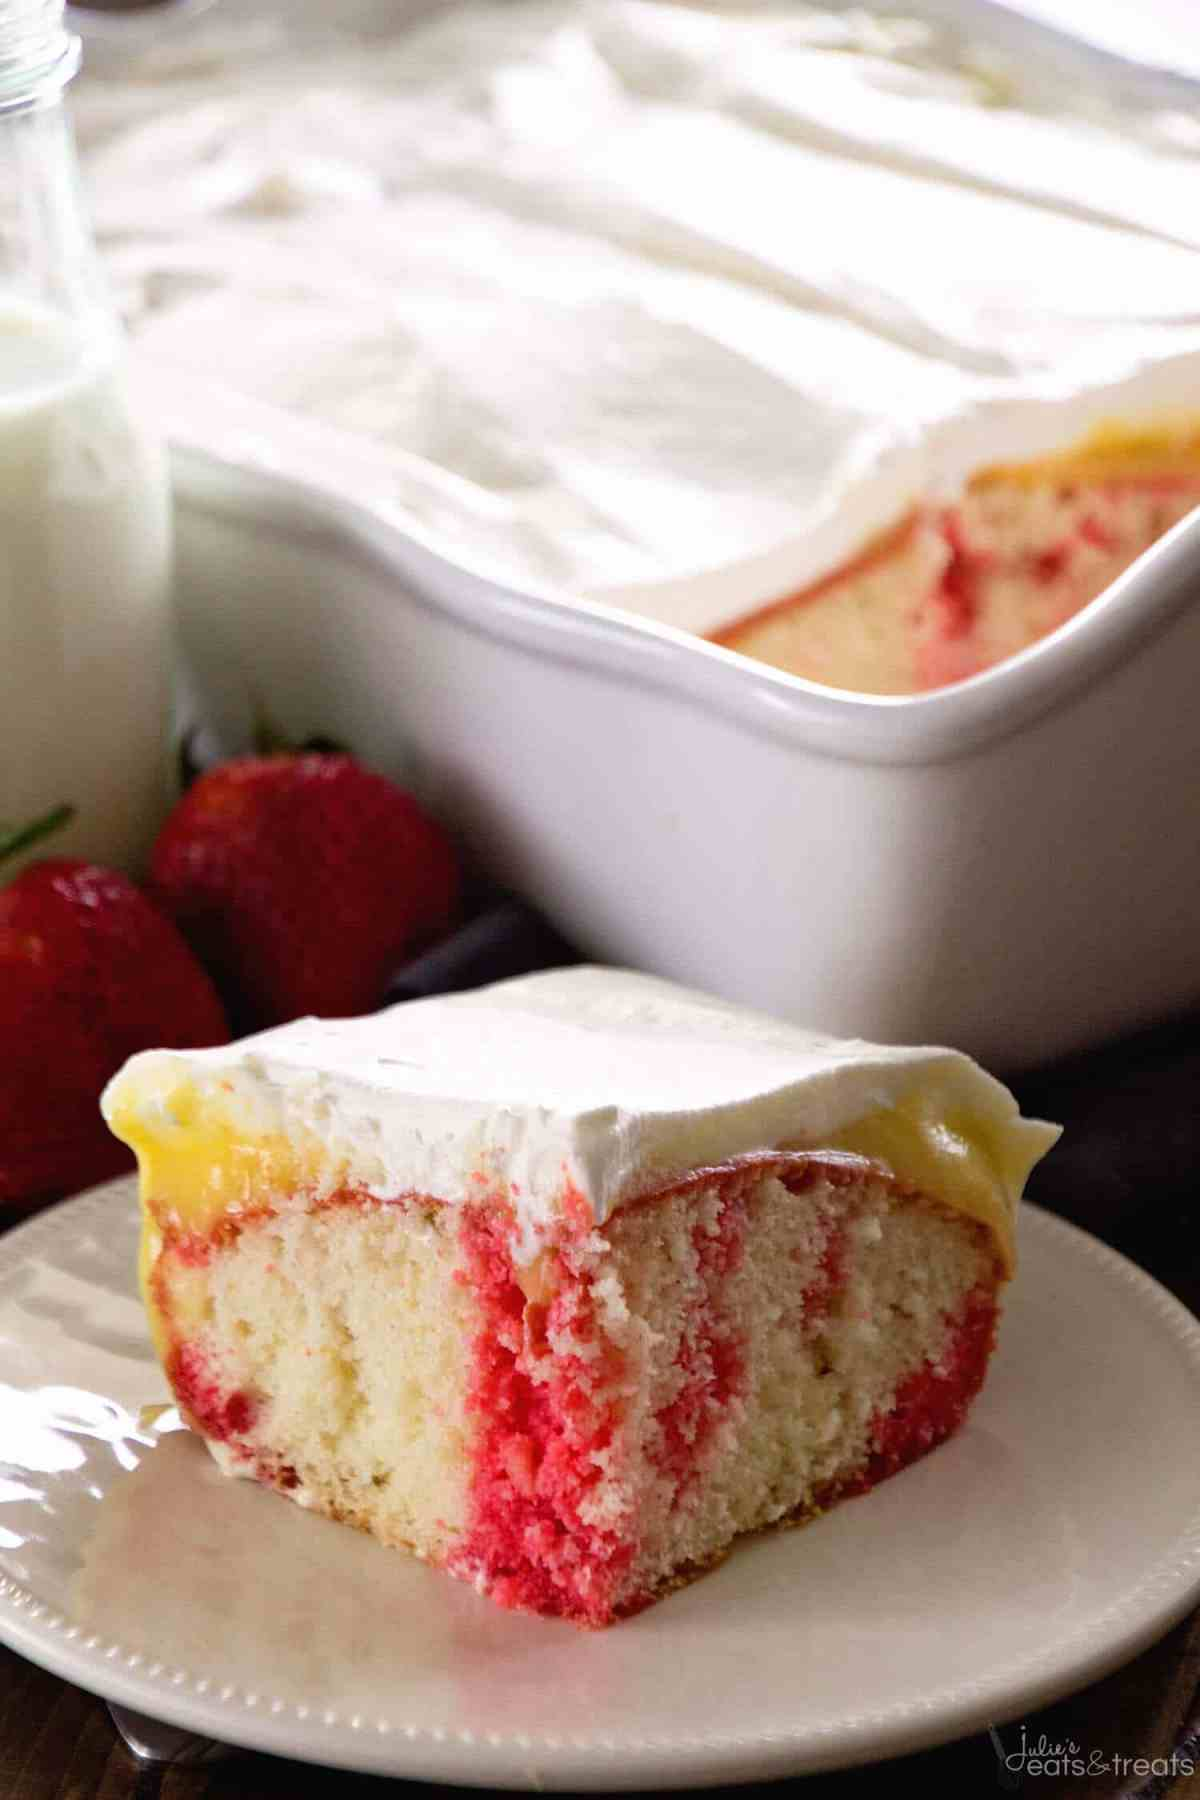 Strawberry Poke Cake dished up on a white plate with strawberries and cake in the background.